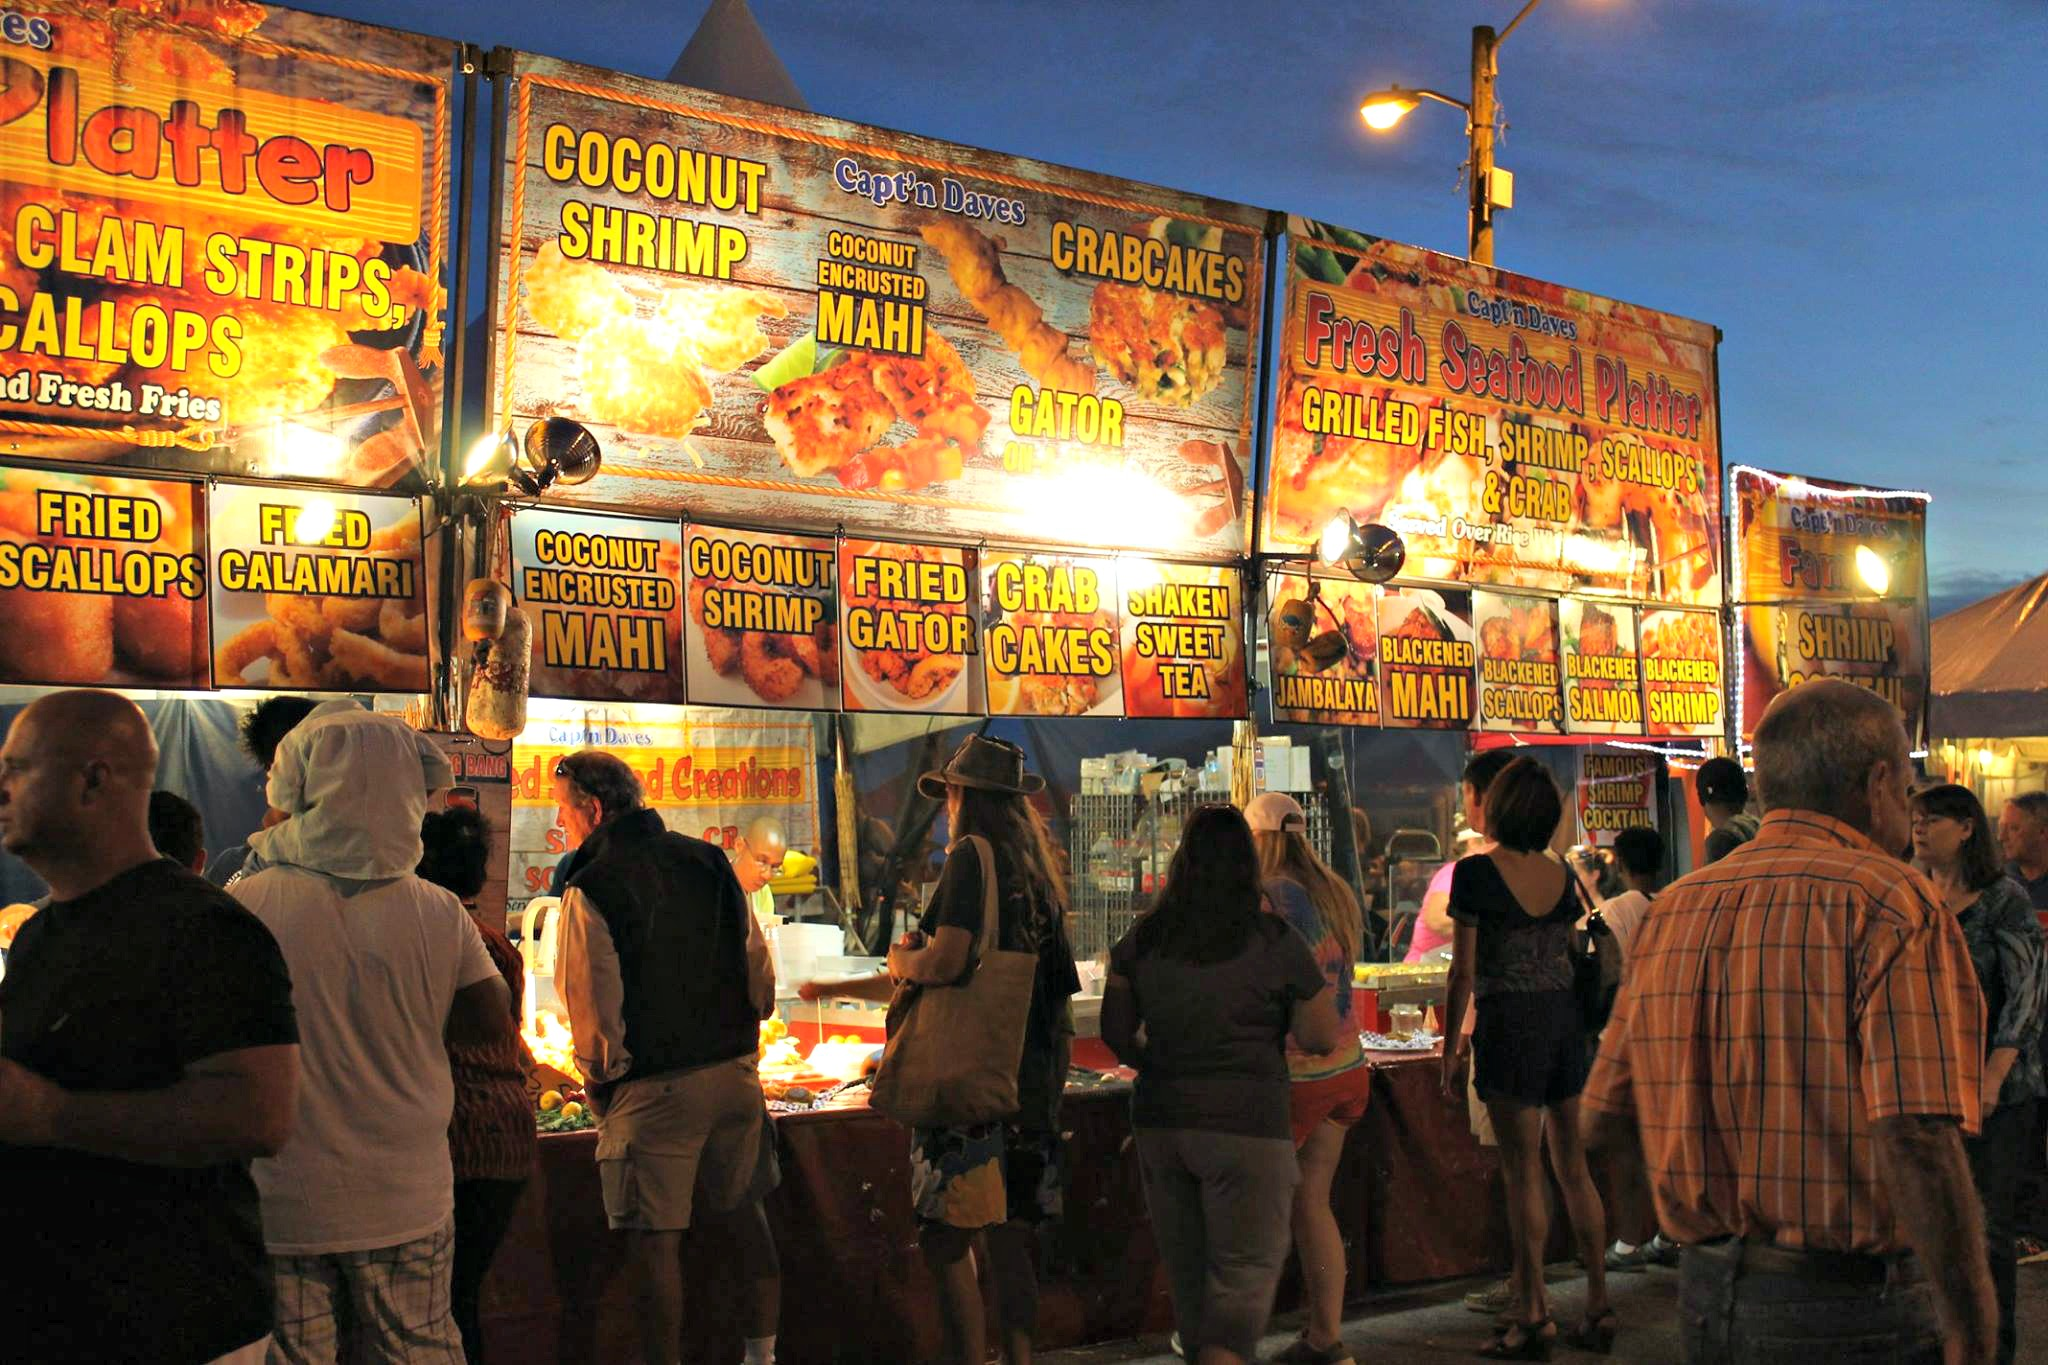 National Shrimp Festival Gulf Shores night shot of food booth